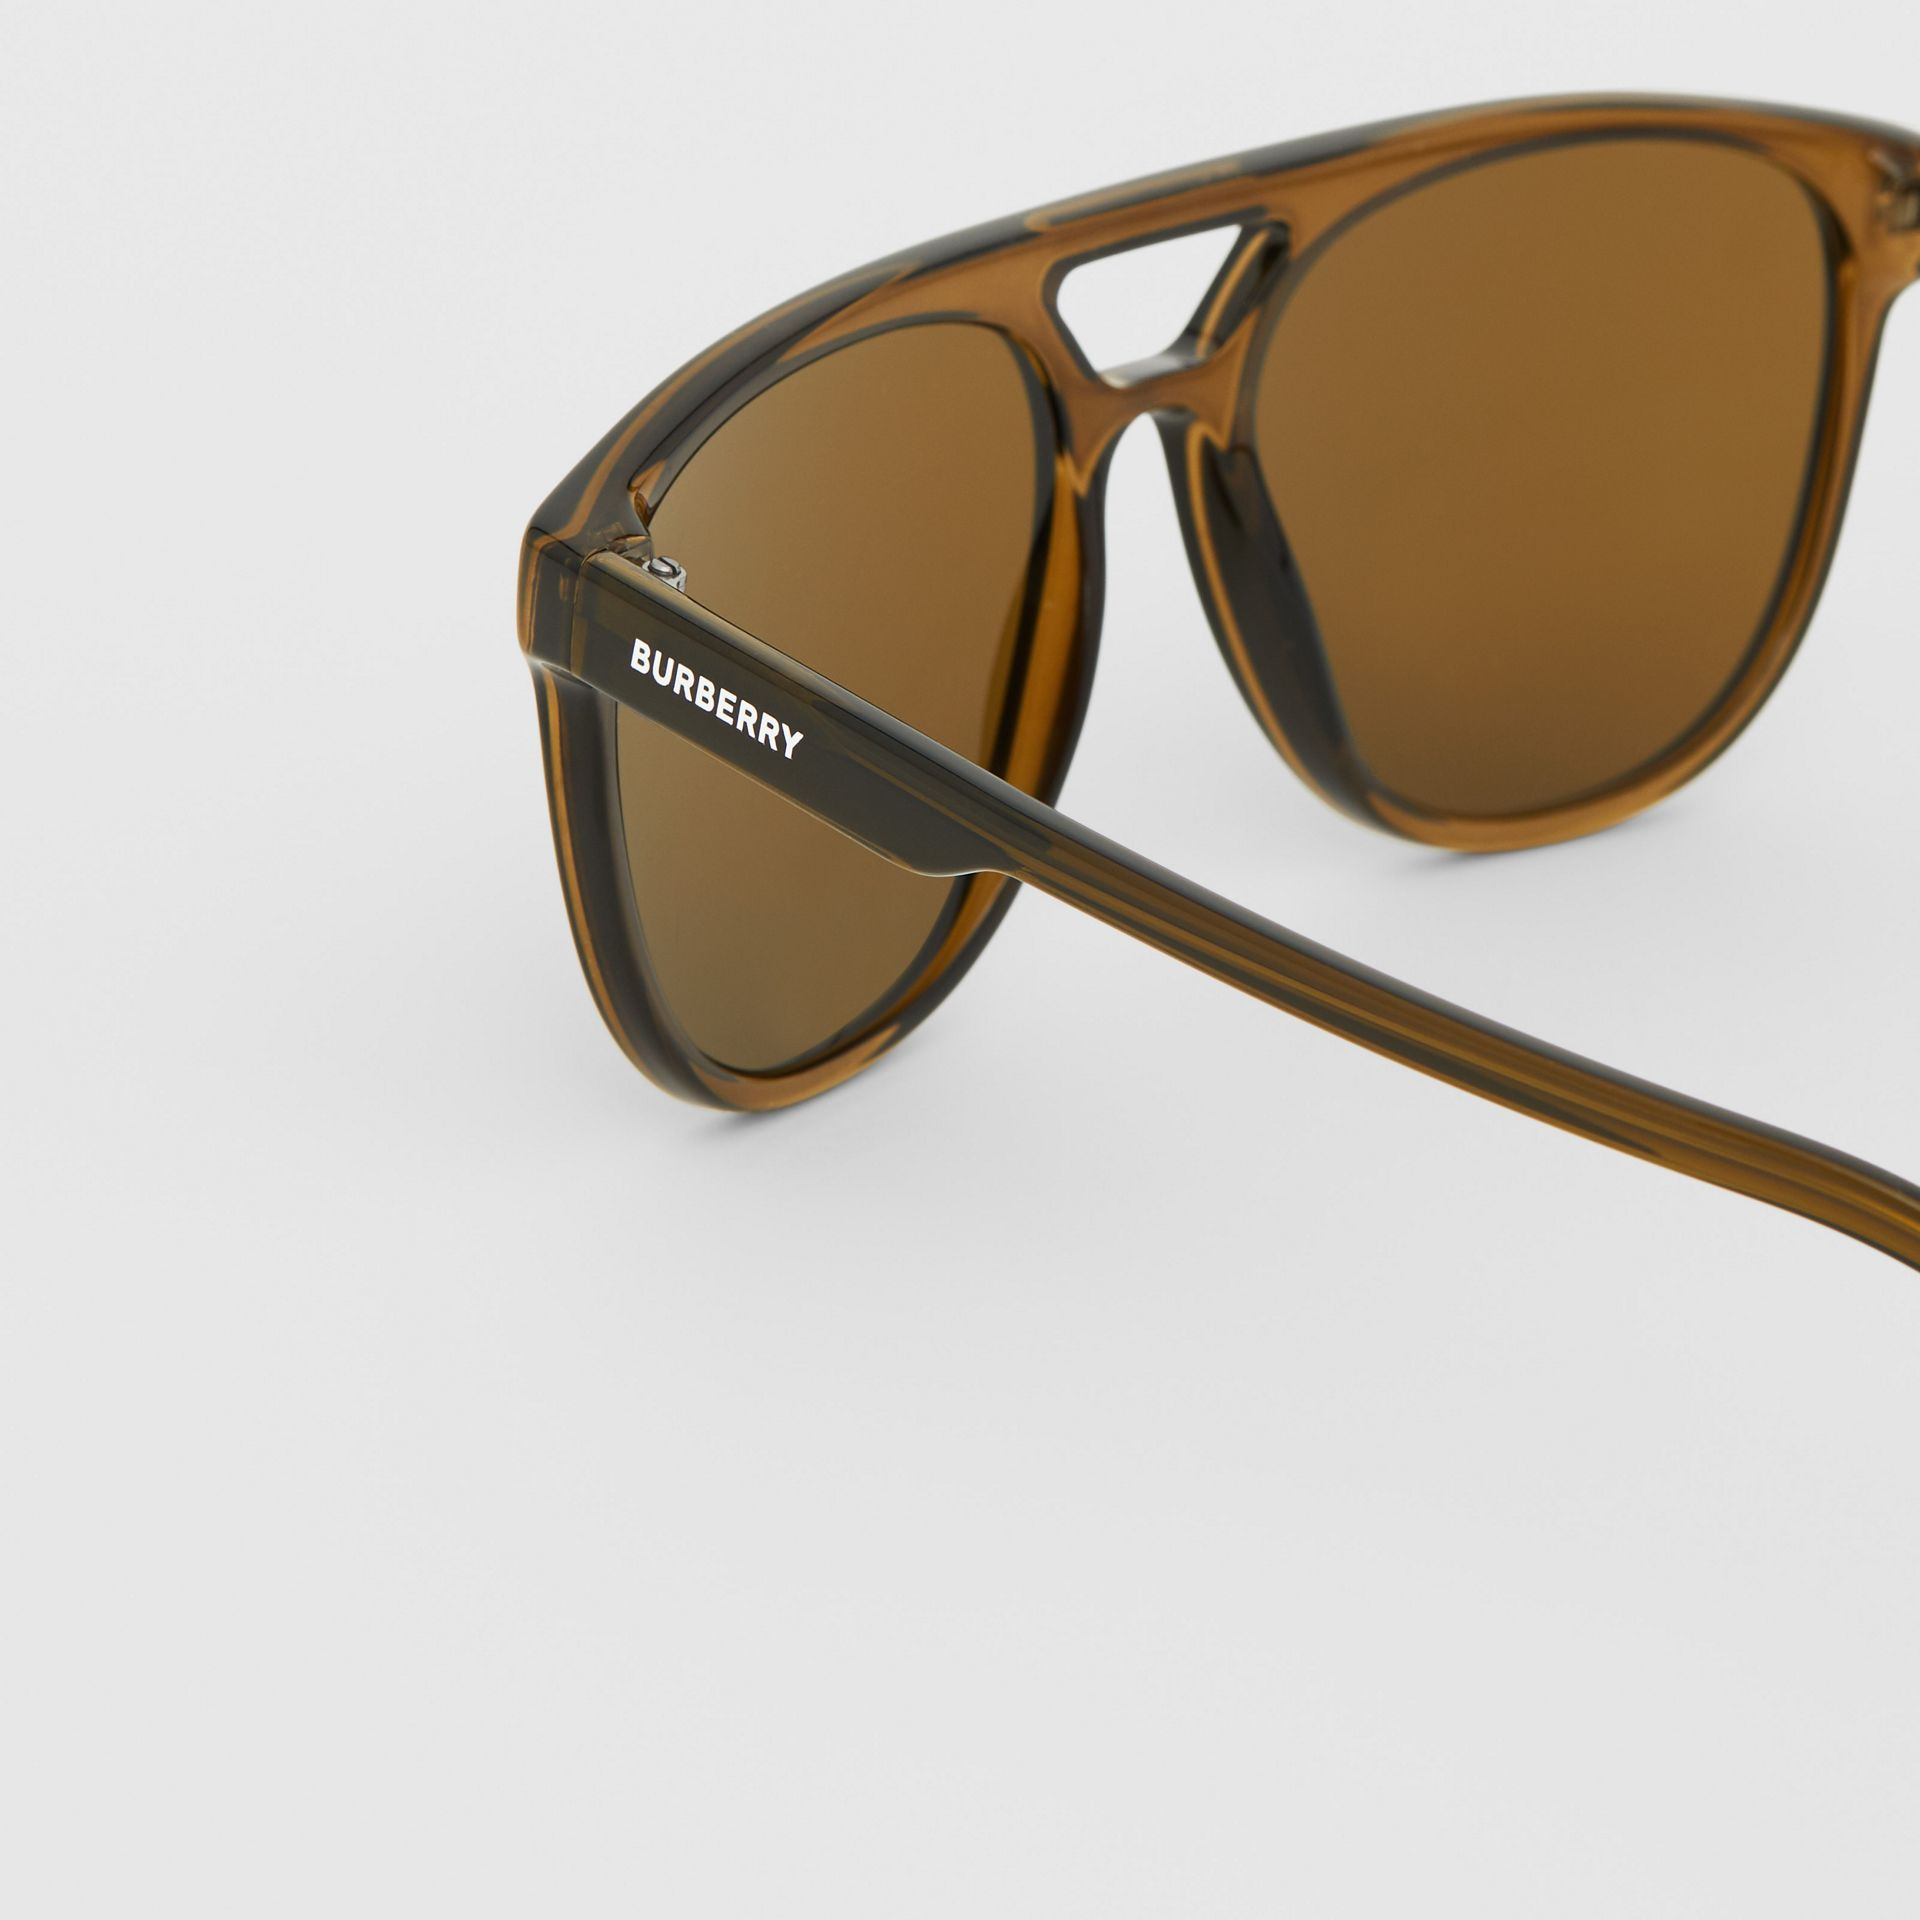 Navigator Sunglasses in Olive Green | Burberry - gallery image 1